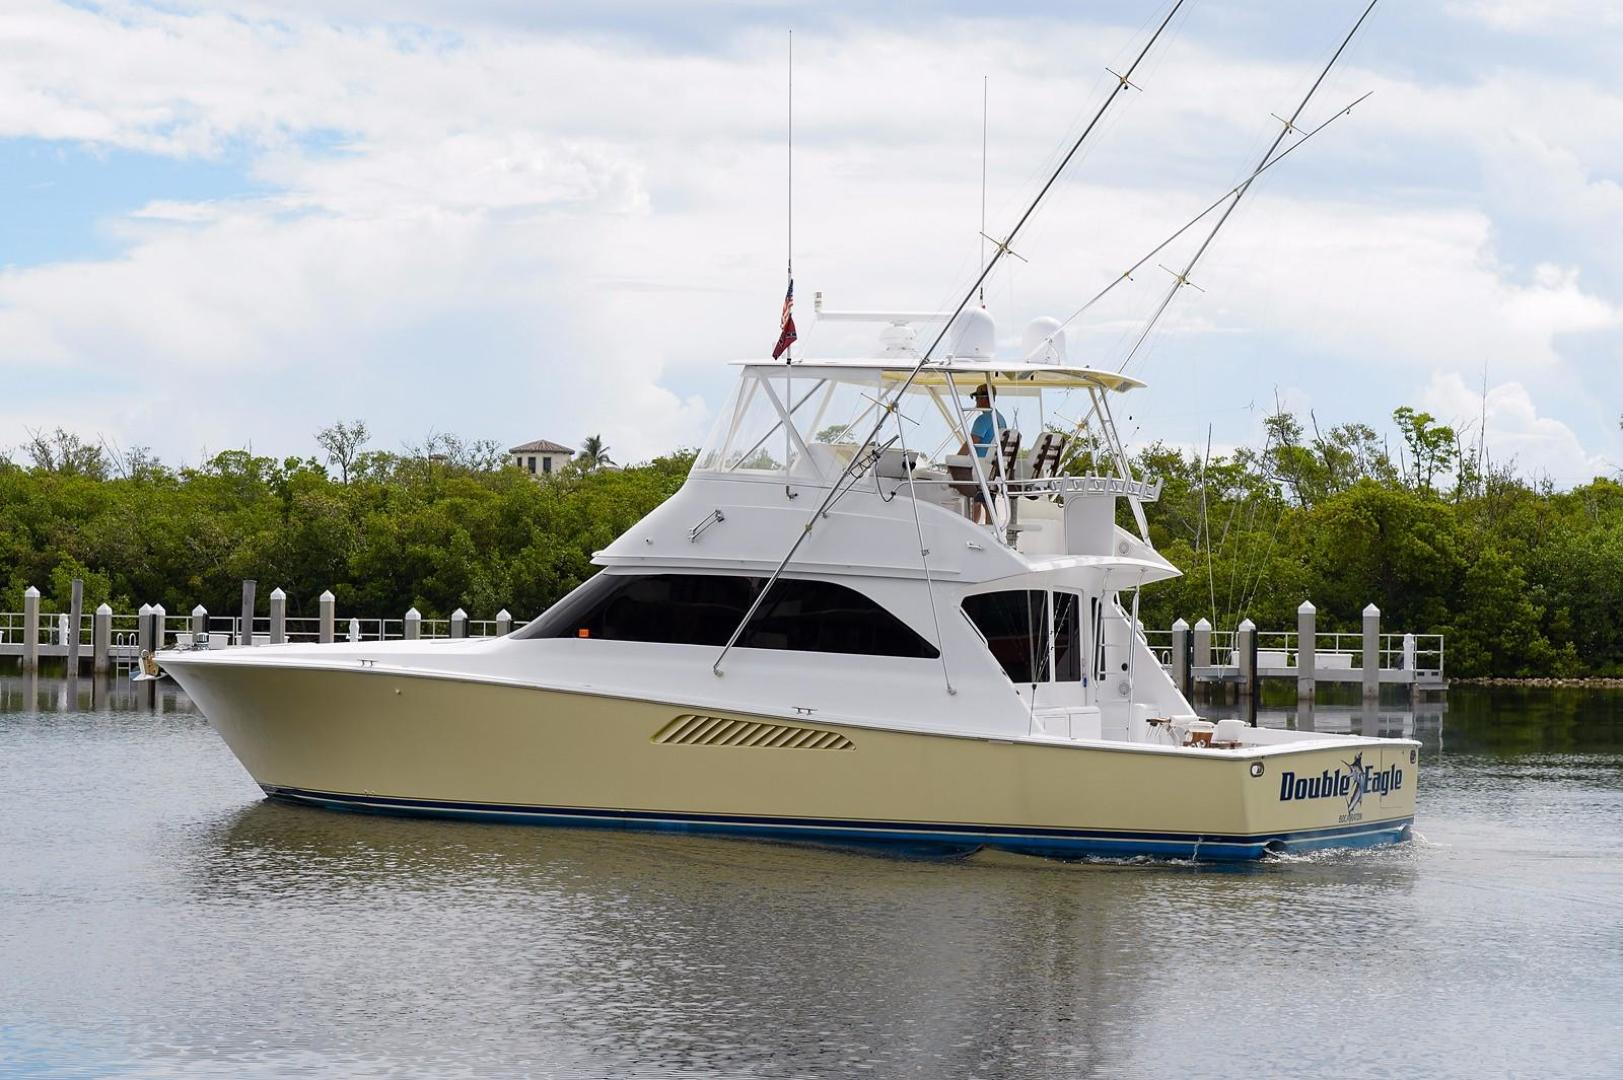 Viking-52 Convertible 2002-Double Eagle Boca Raton-Florida-United States-458766 | Thumbnail